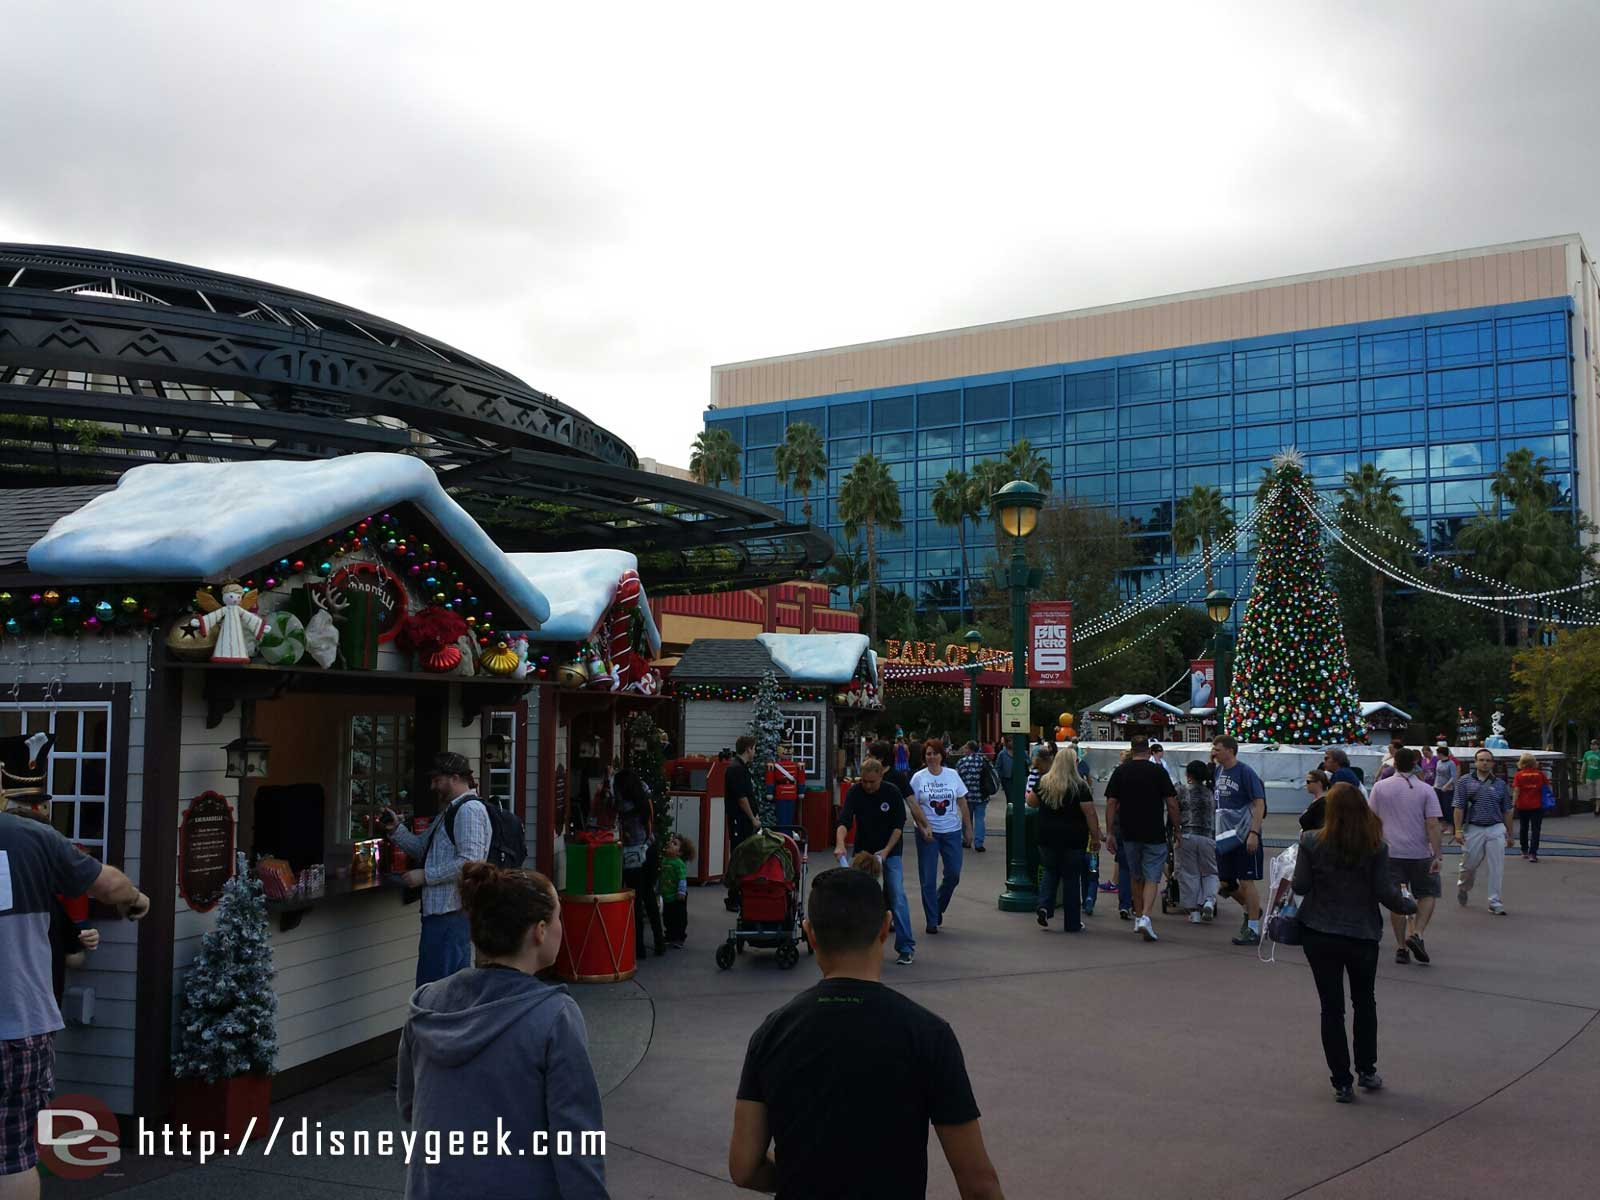 The winter village in Downtown Disney is more spread out this year #Disneyland